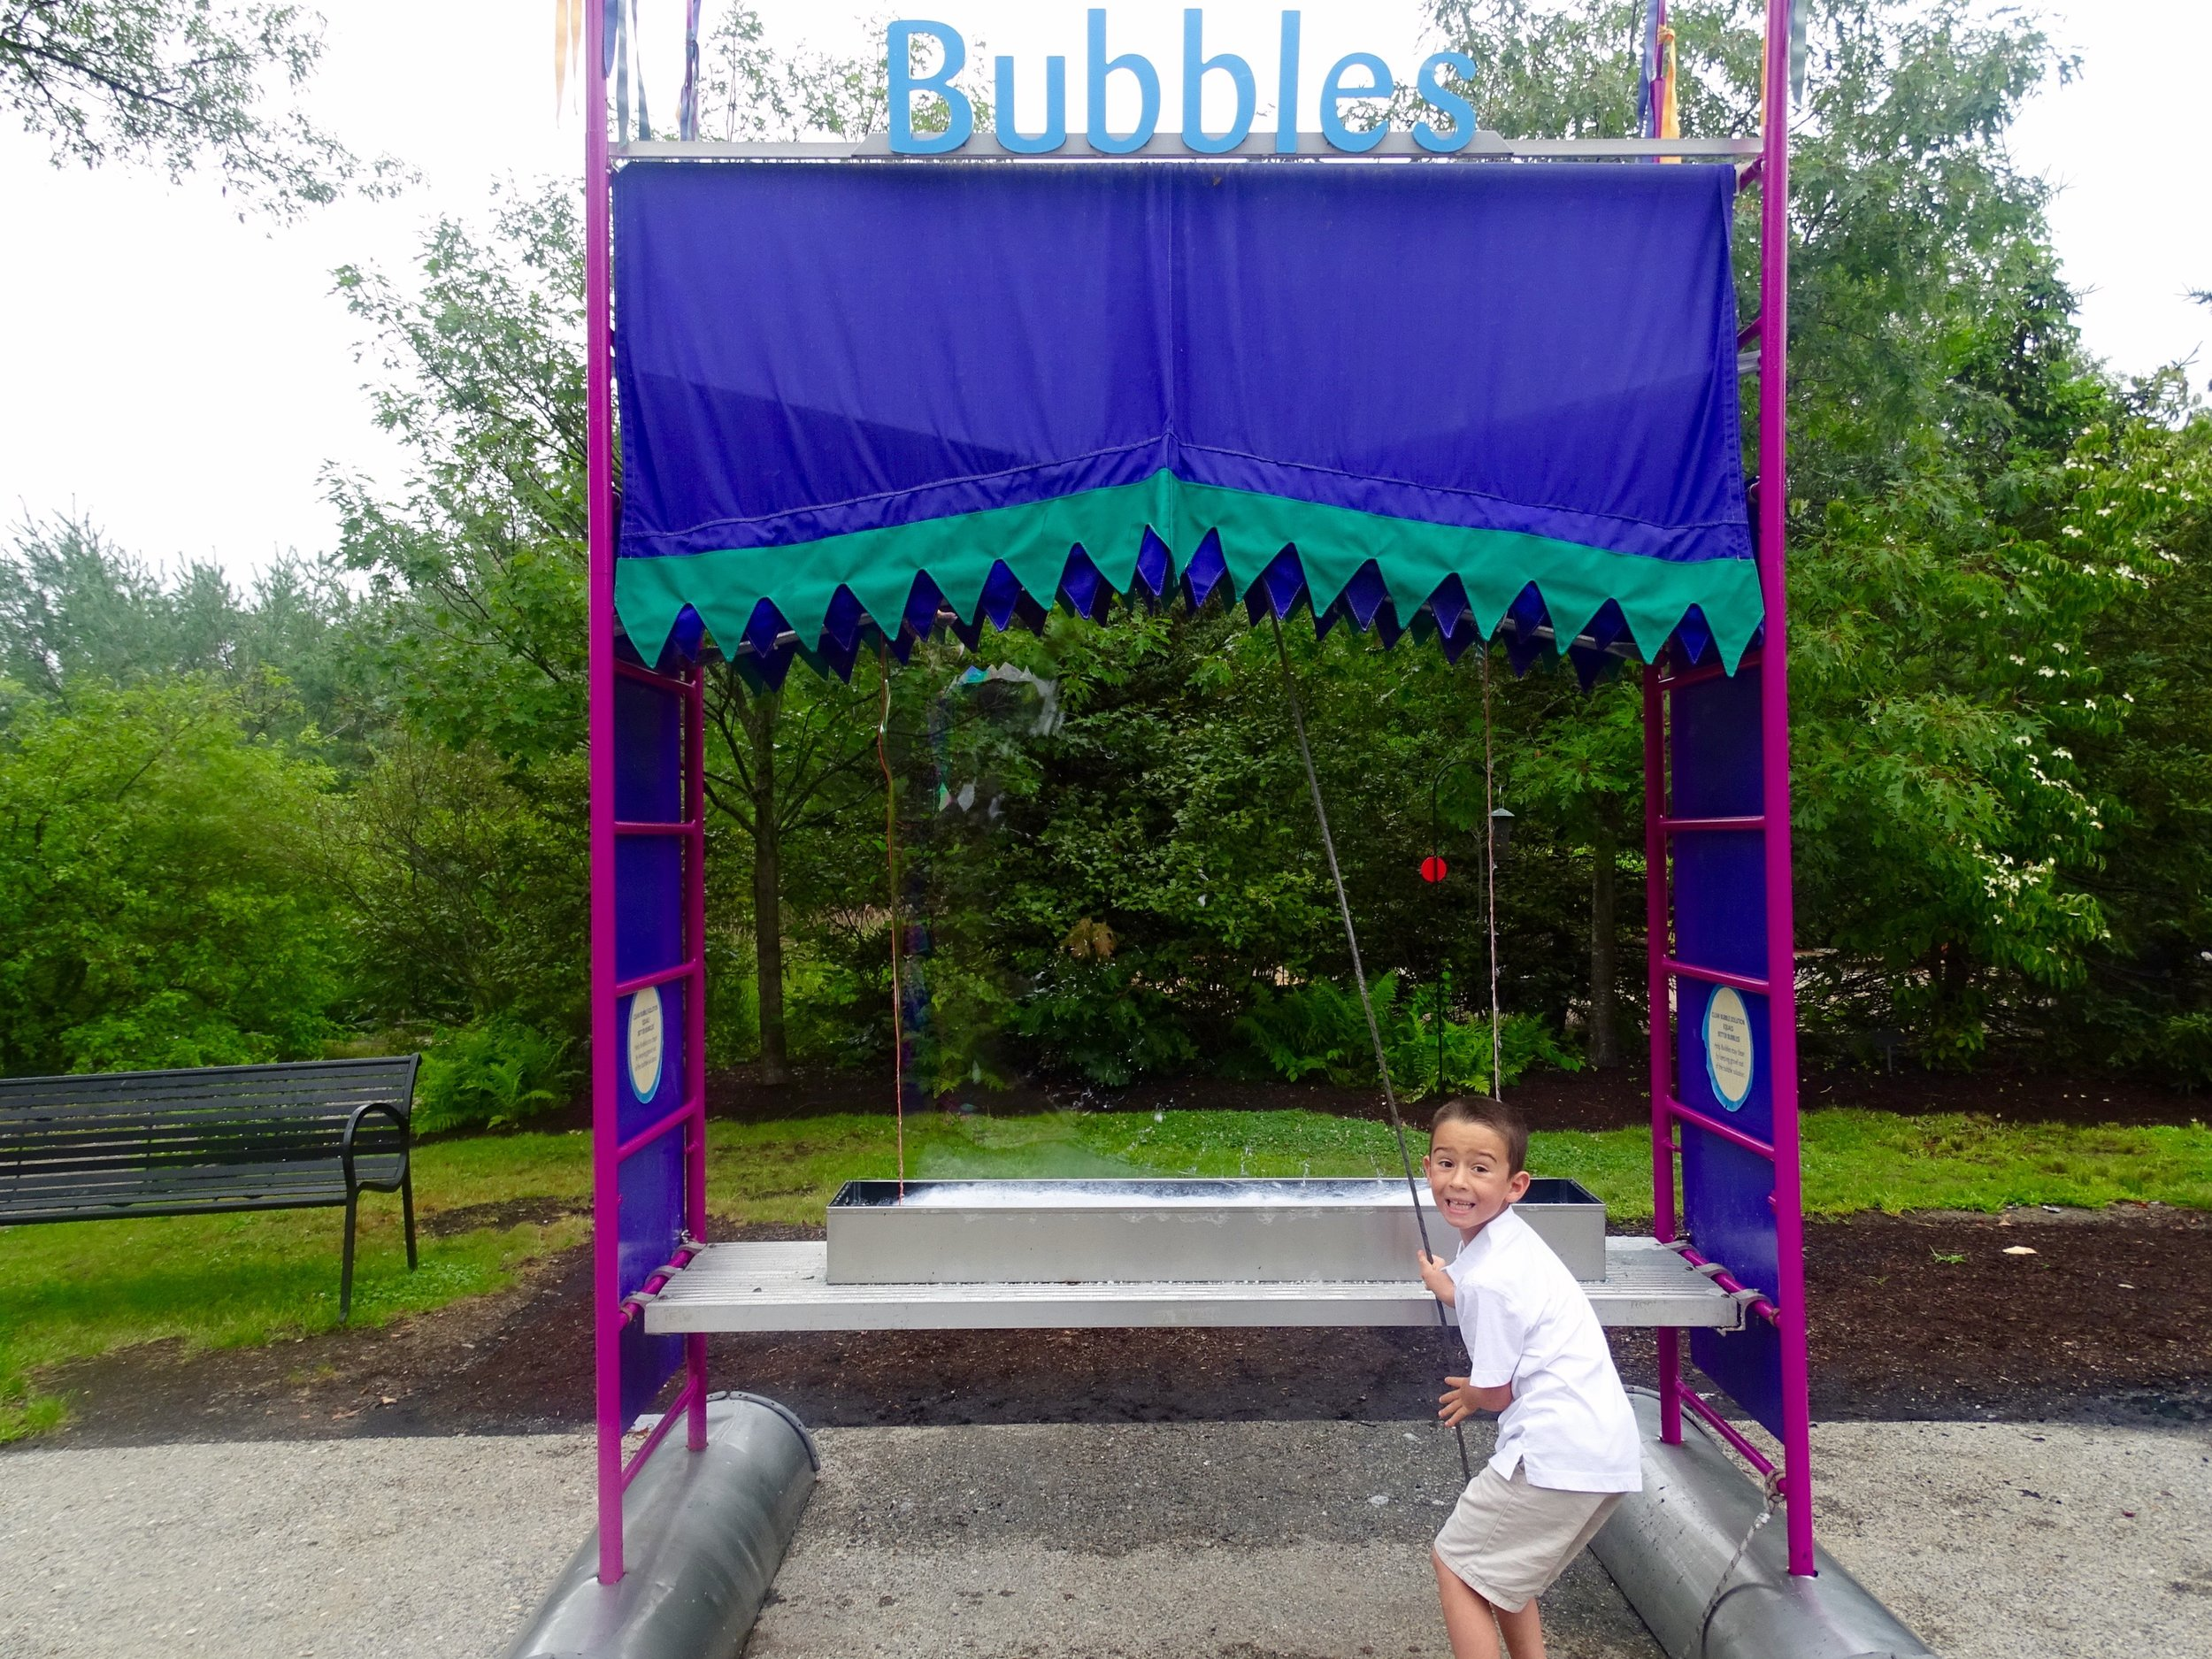 My son was super proud he made a bubble large enough to reach the top of one of the many structure.